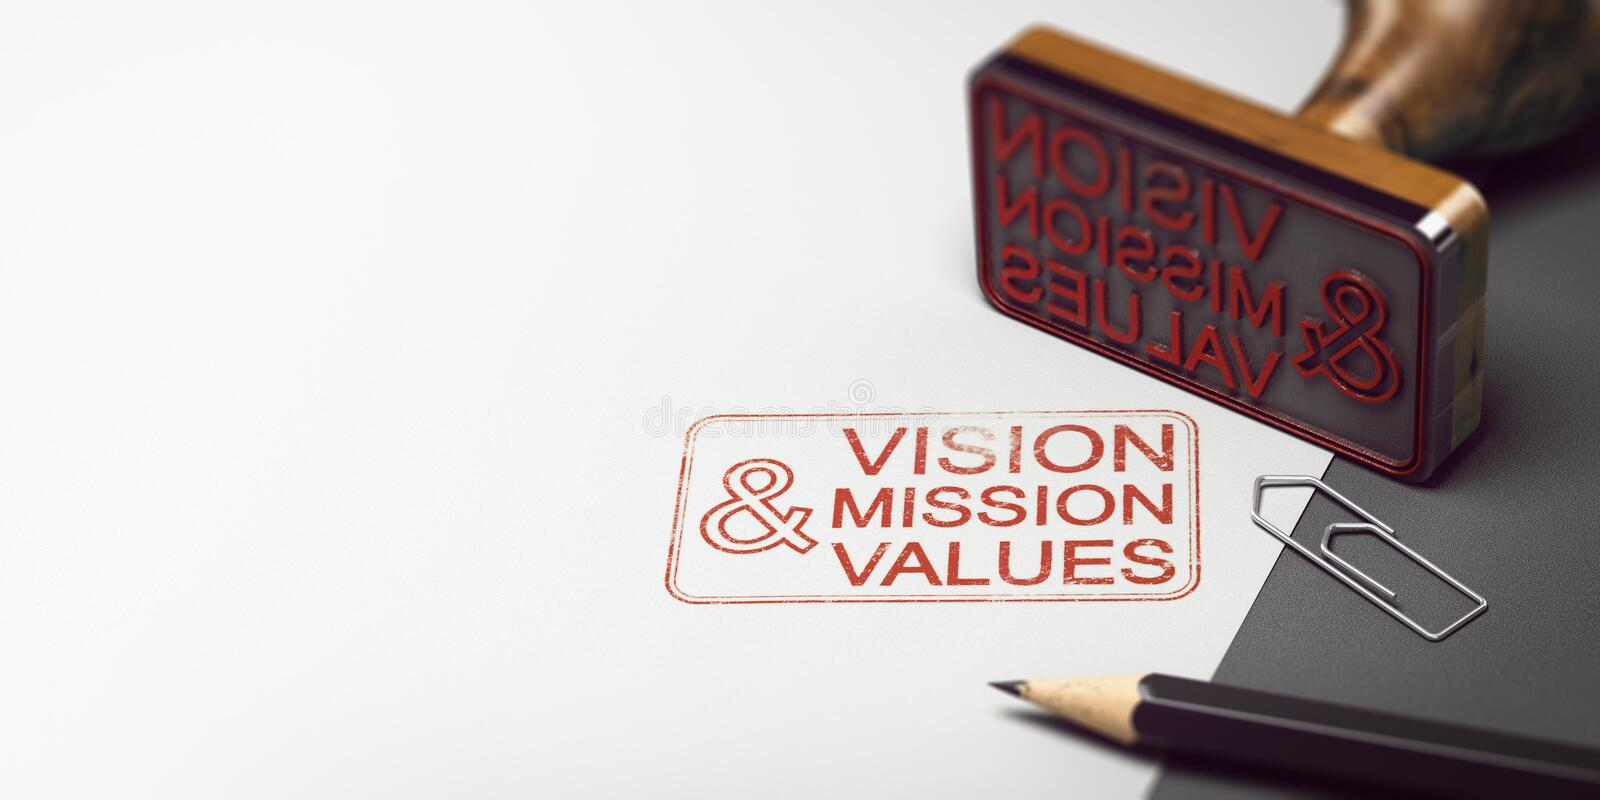 Company Statement, Vision, Mission and Values vector illustration